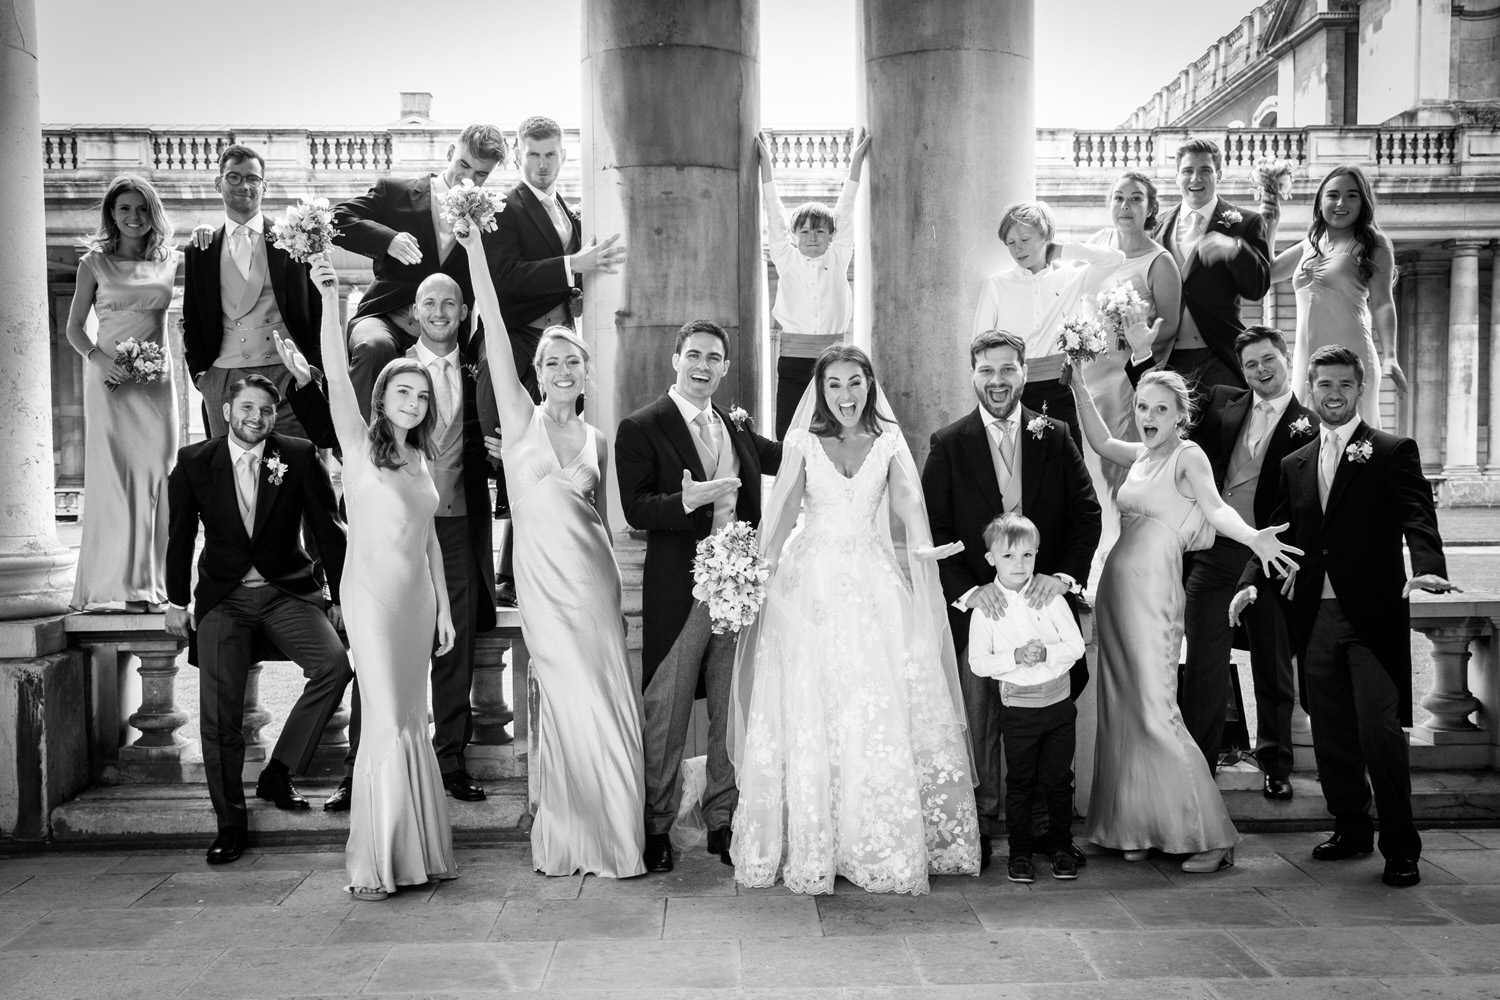 Wedding Day Services - If you are enjoying the journey of planning your own wedding but you would like some expert assistance as you approach the day itself, we offer some flexible services to support your individual needs.